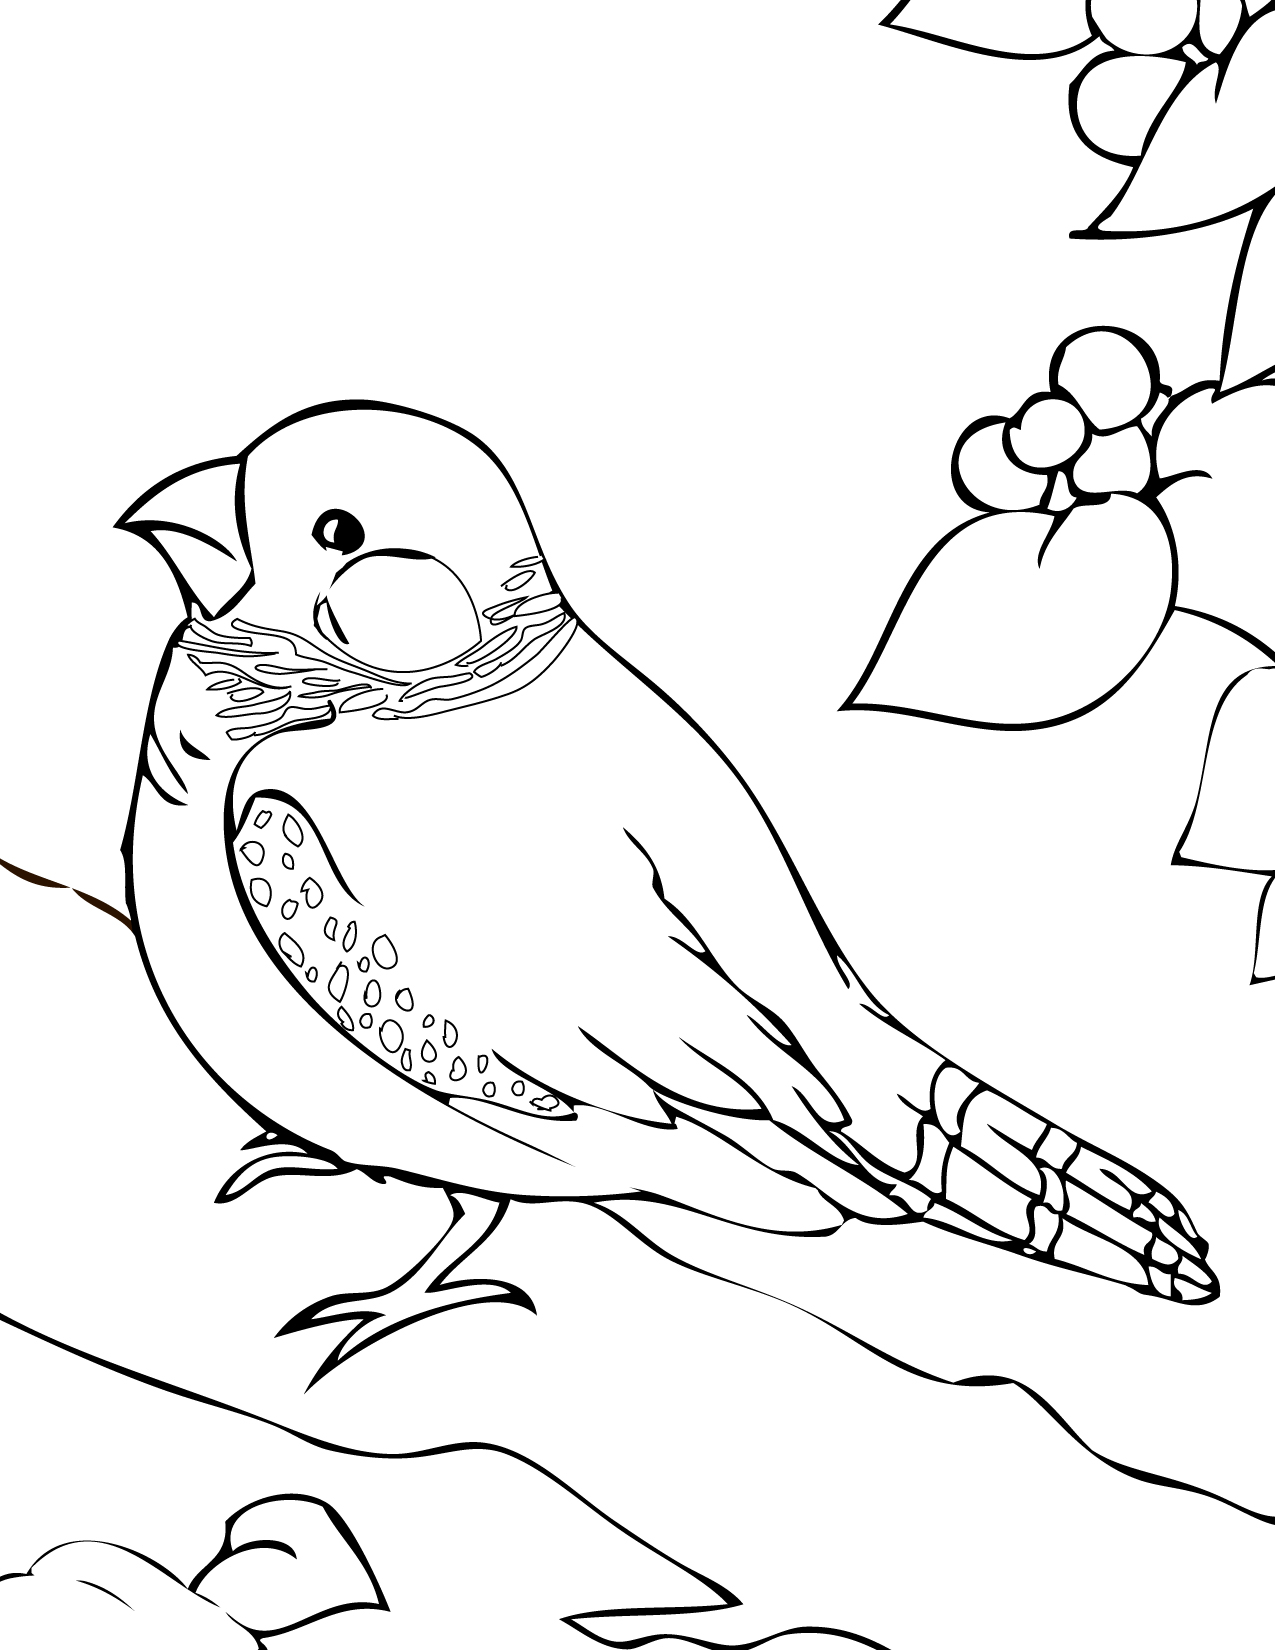 Finch coloring #16, Download drawings